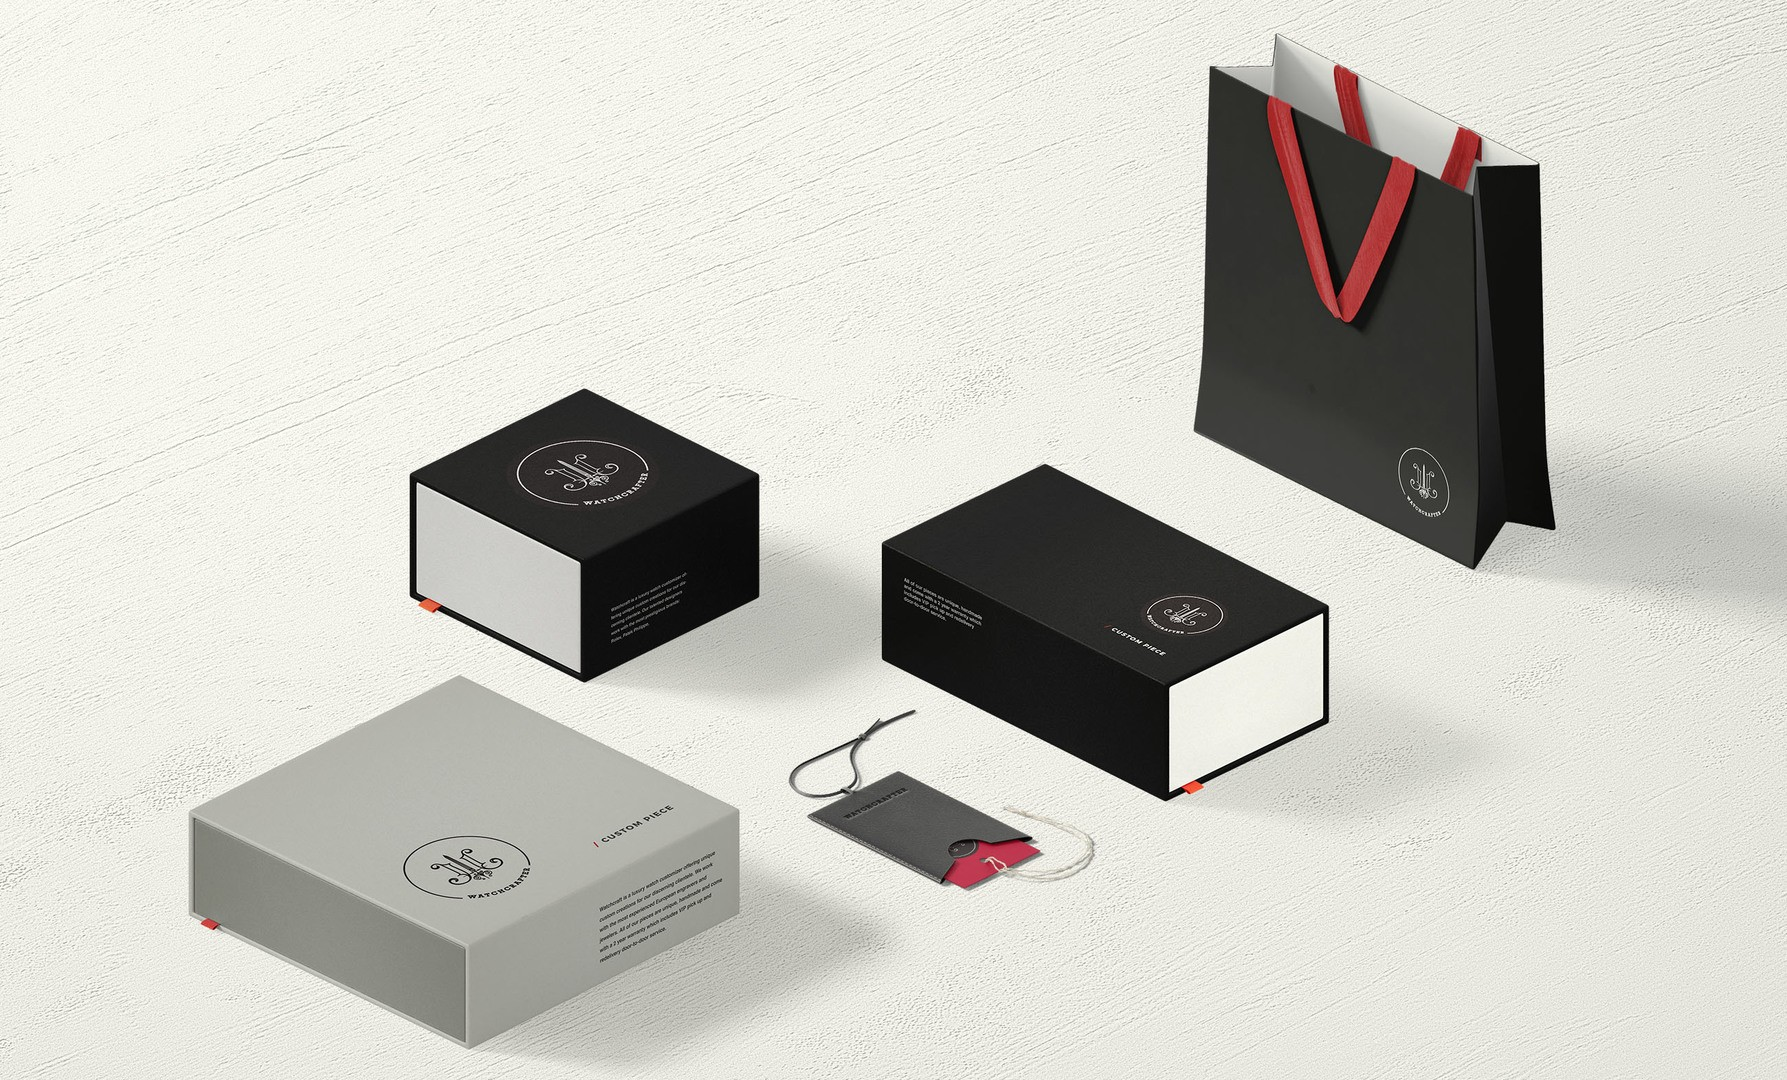 Luxury Watch Brand Packaging Design With Custom Boxes, Tags and Shopping Bag